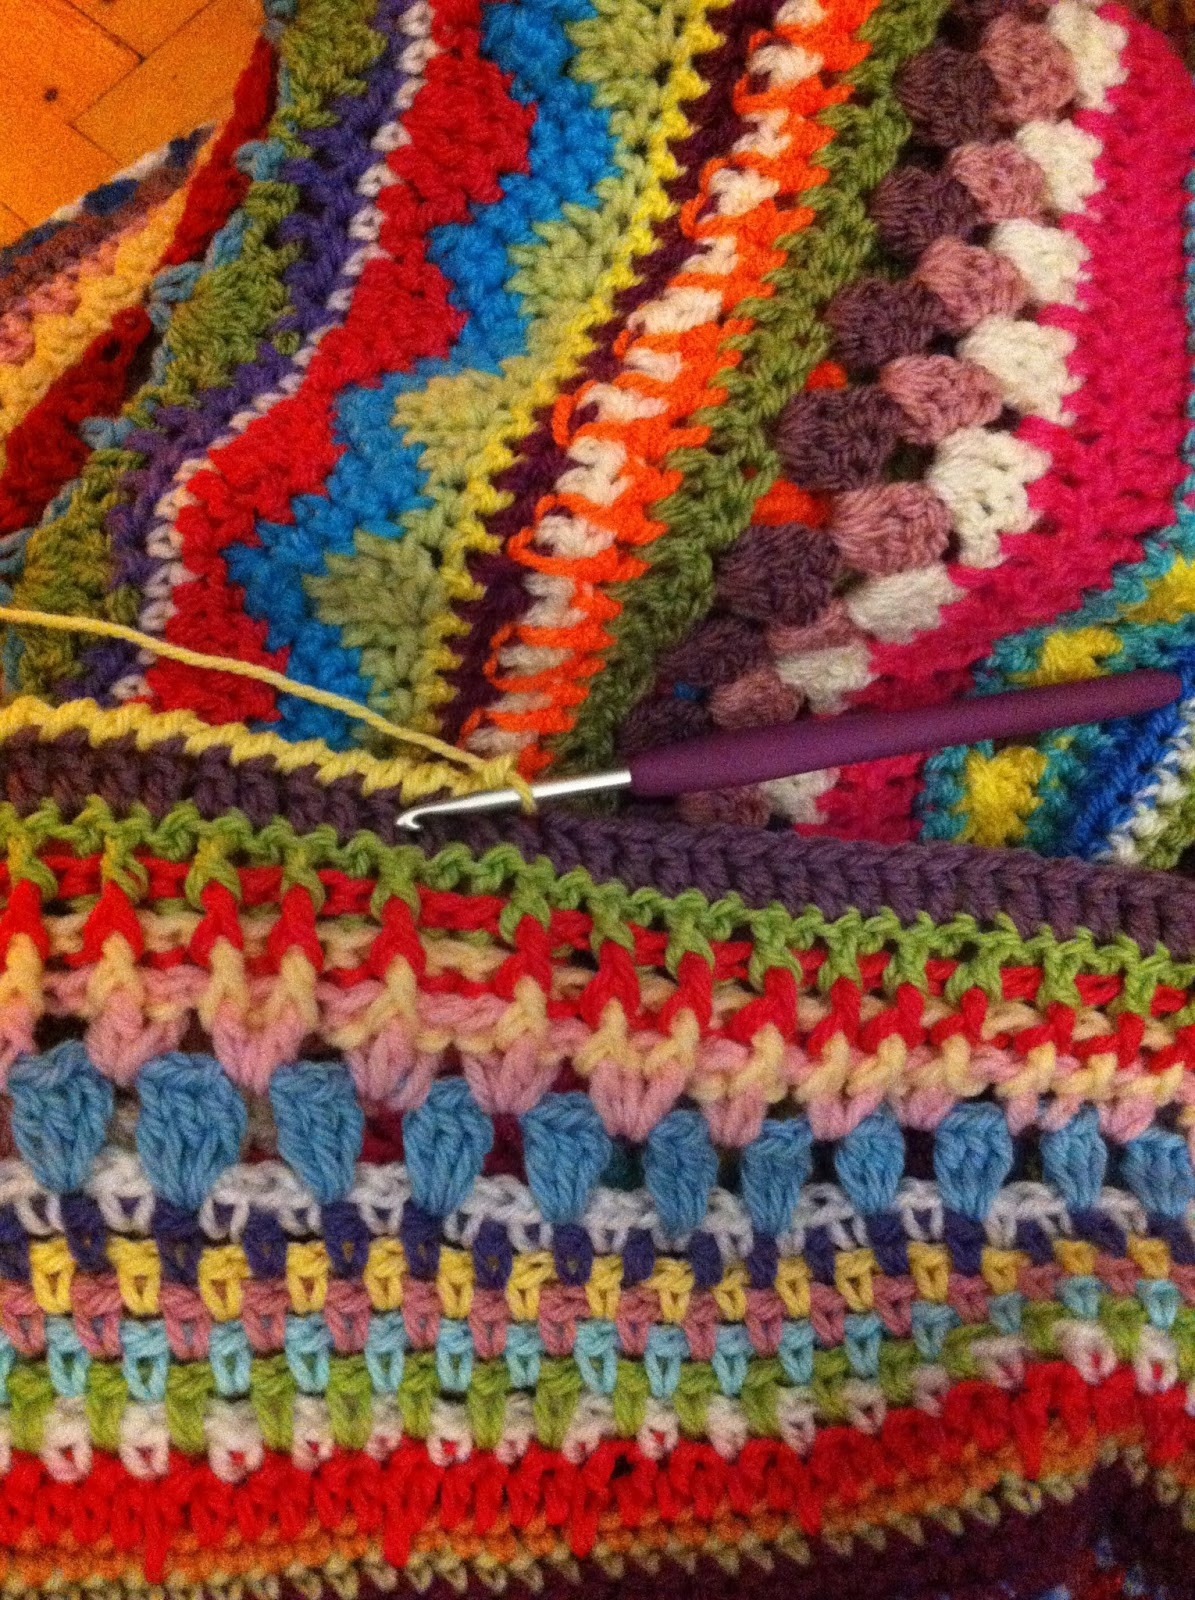 Get Hooked on Crochet Before the year ends